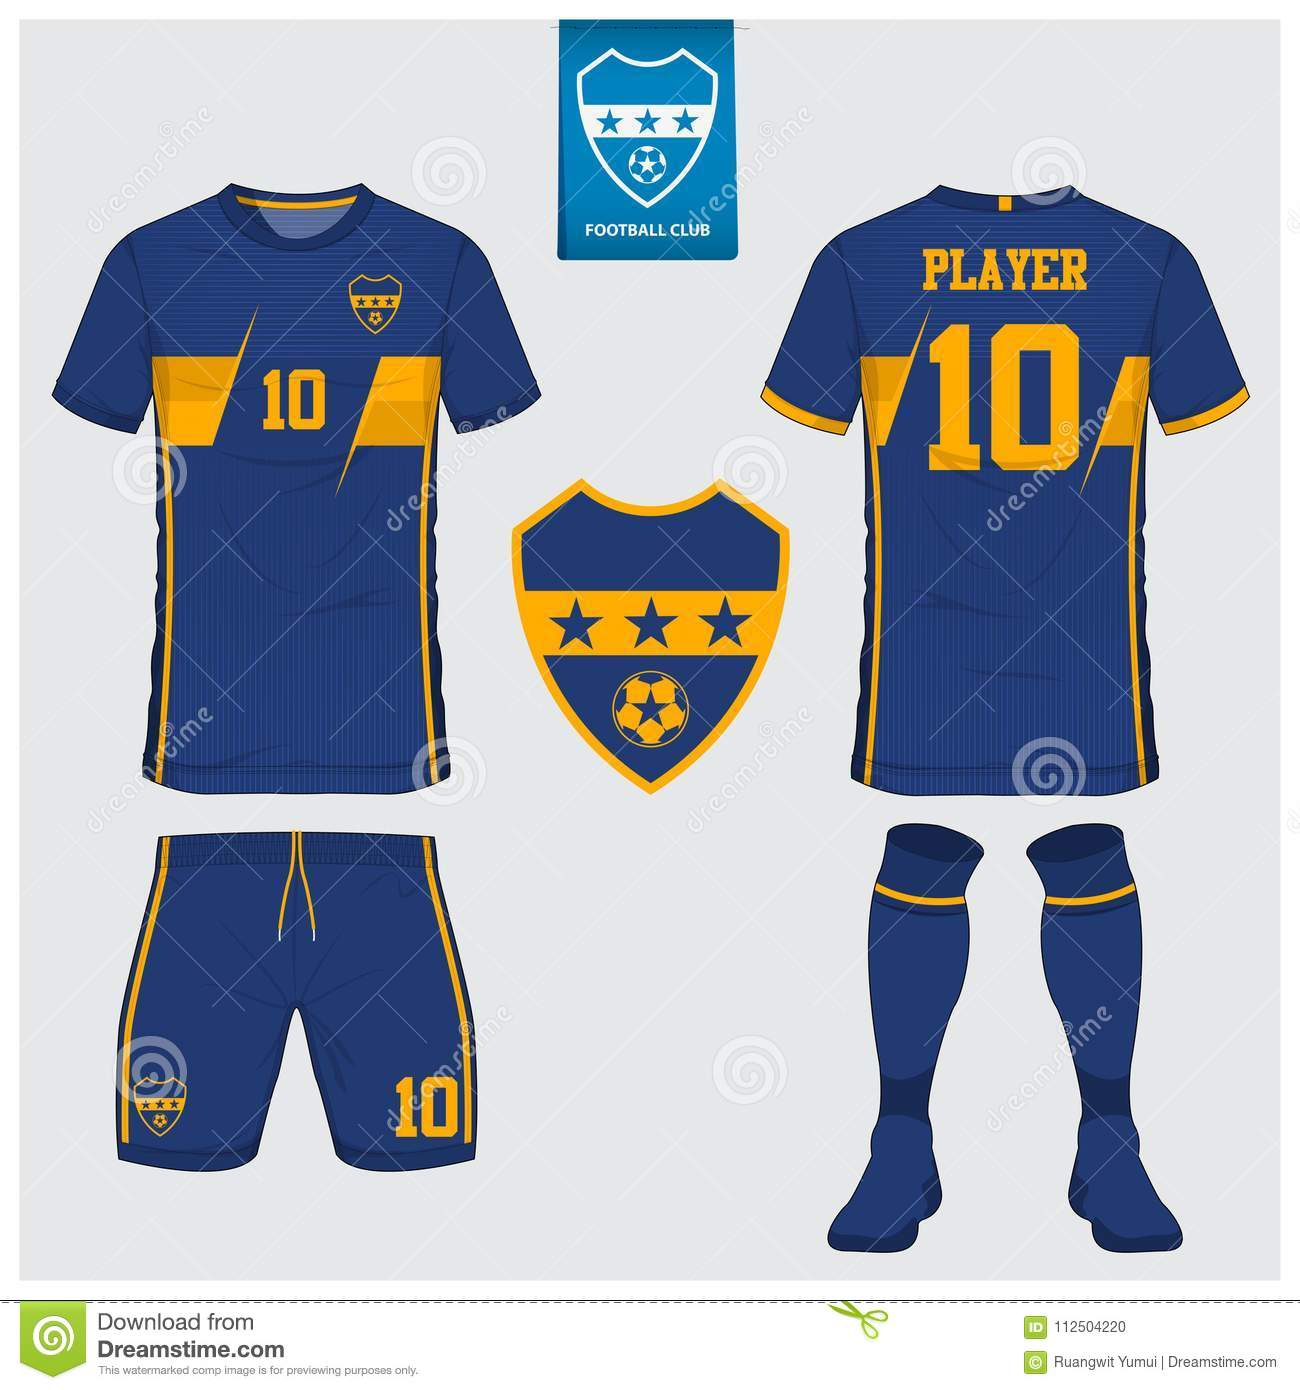 75f74698d Soccer Jersey Or Football Kit Template For Football Club. Short ...